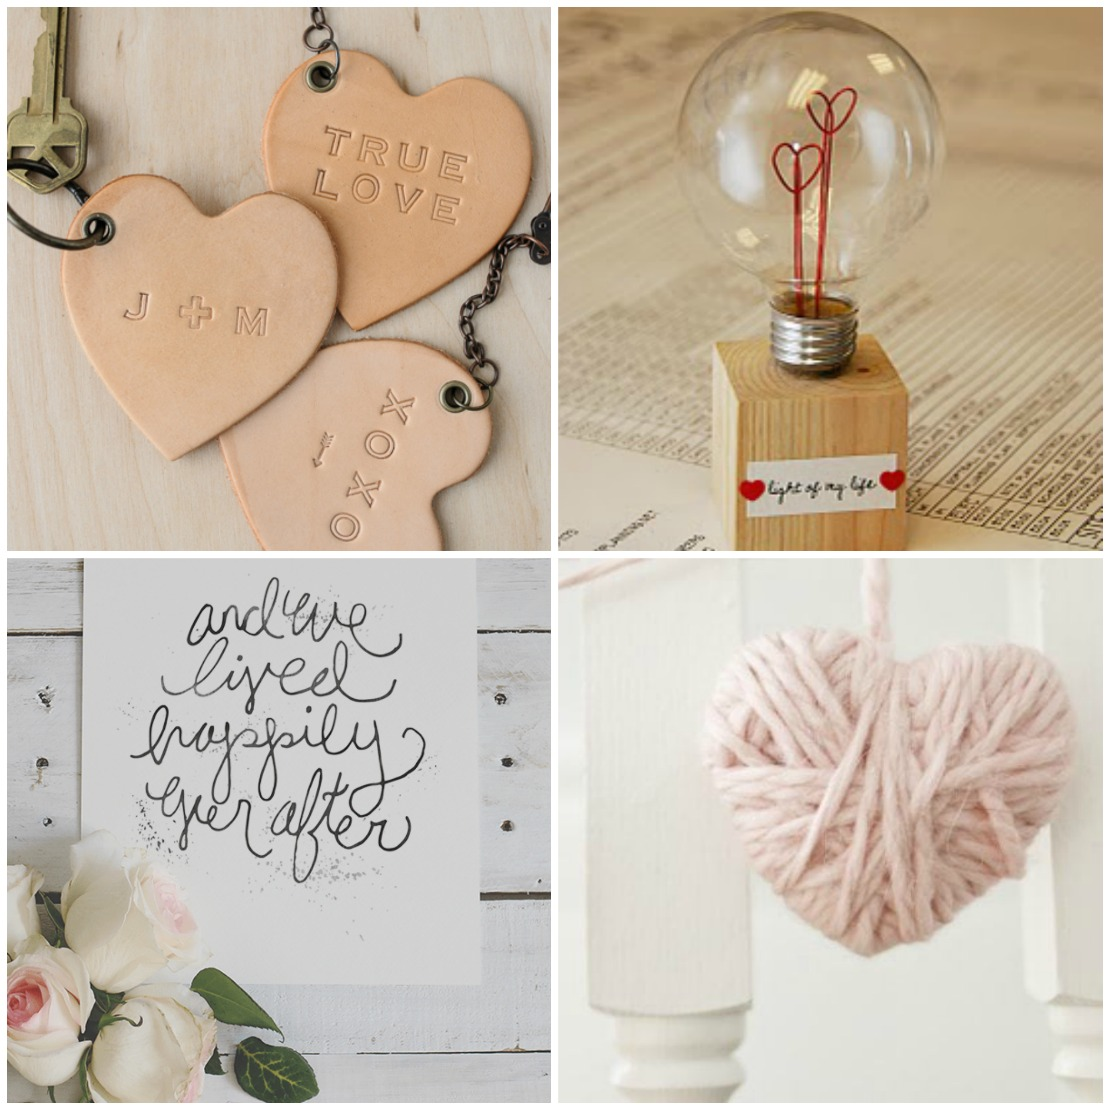 4 picture collage with leart keychain hearts lightbulb wire hearts. free printable and pink yarn heart